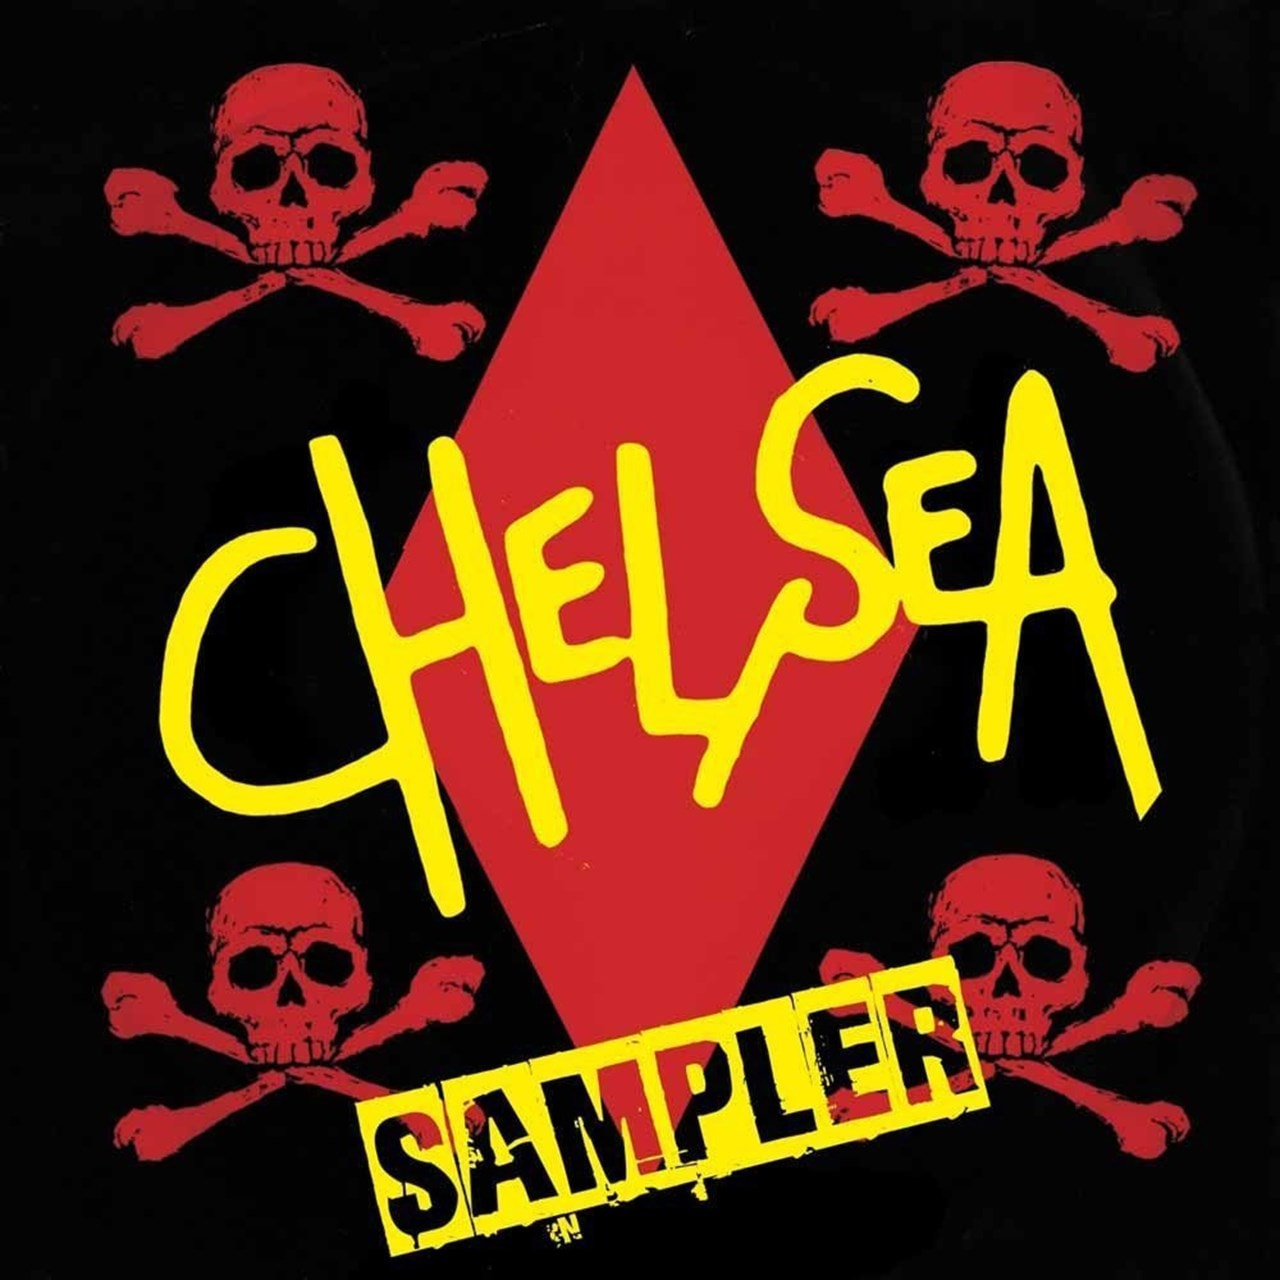 Looks Right: The Chelsea Sampler - 1